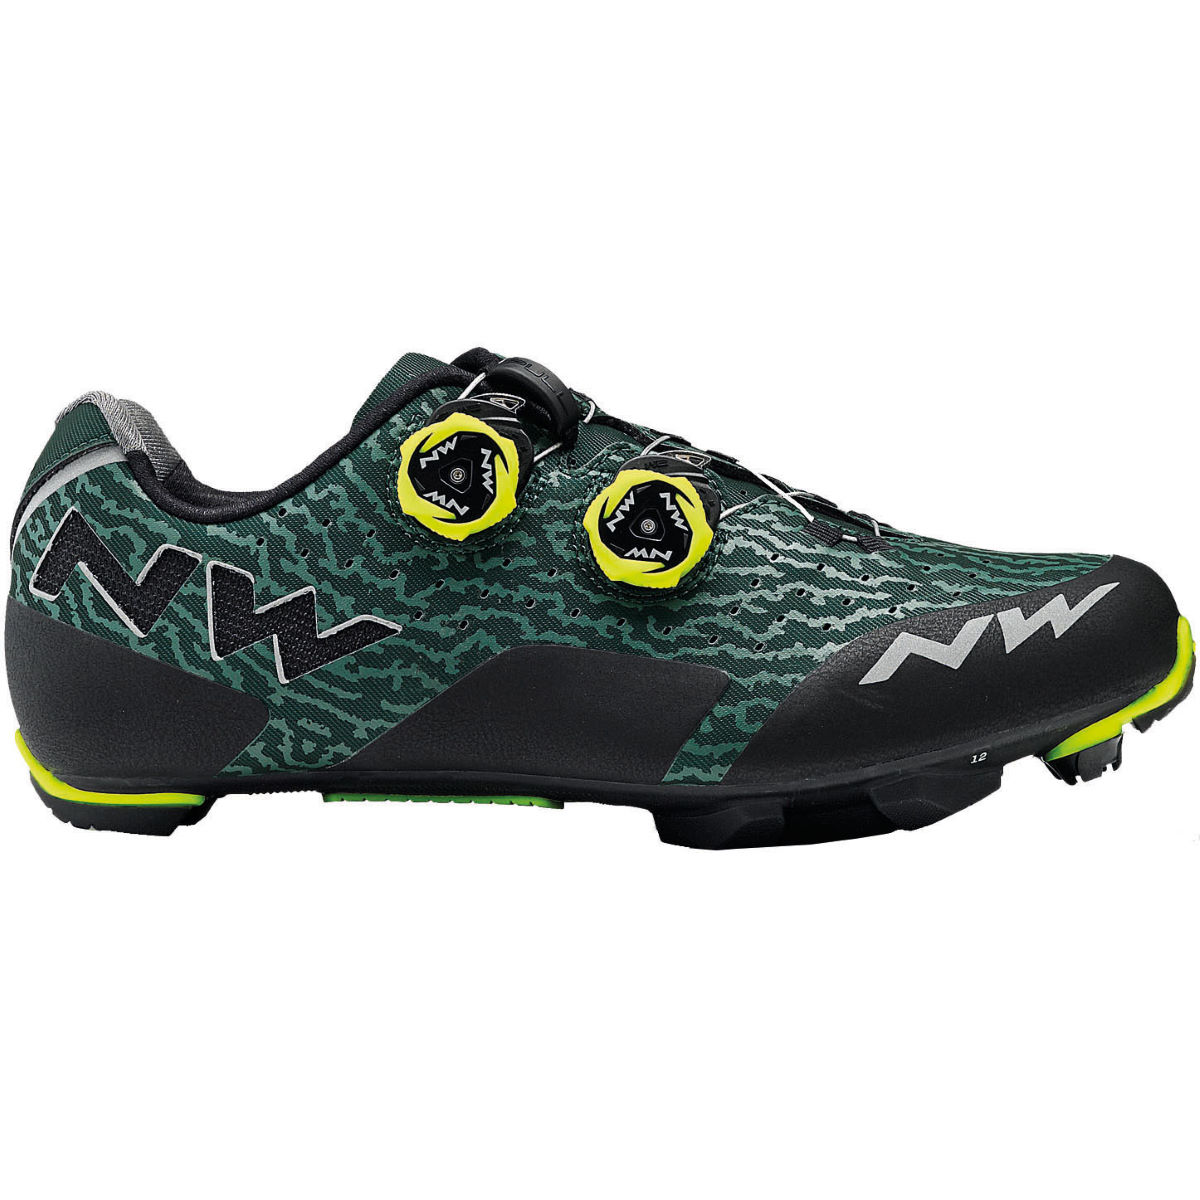 Northwave rebel shoes internal green gables yellow 2018 nws80182042 67 39